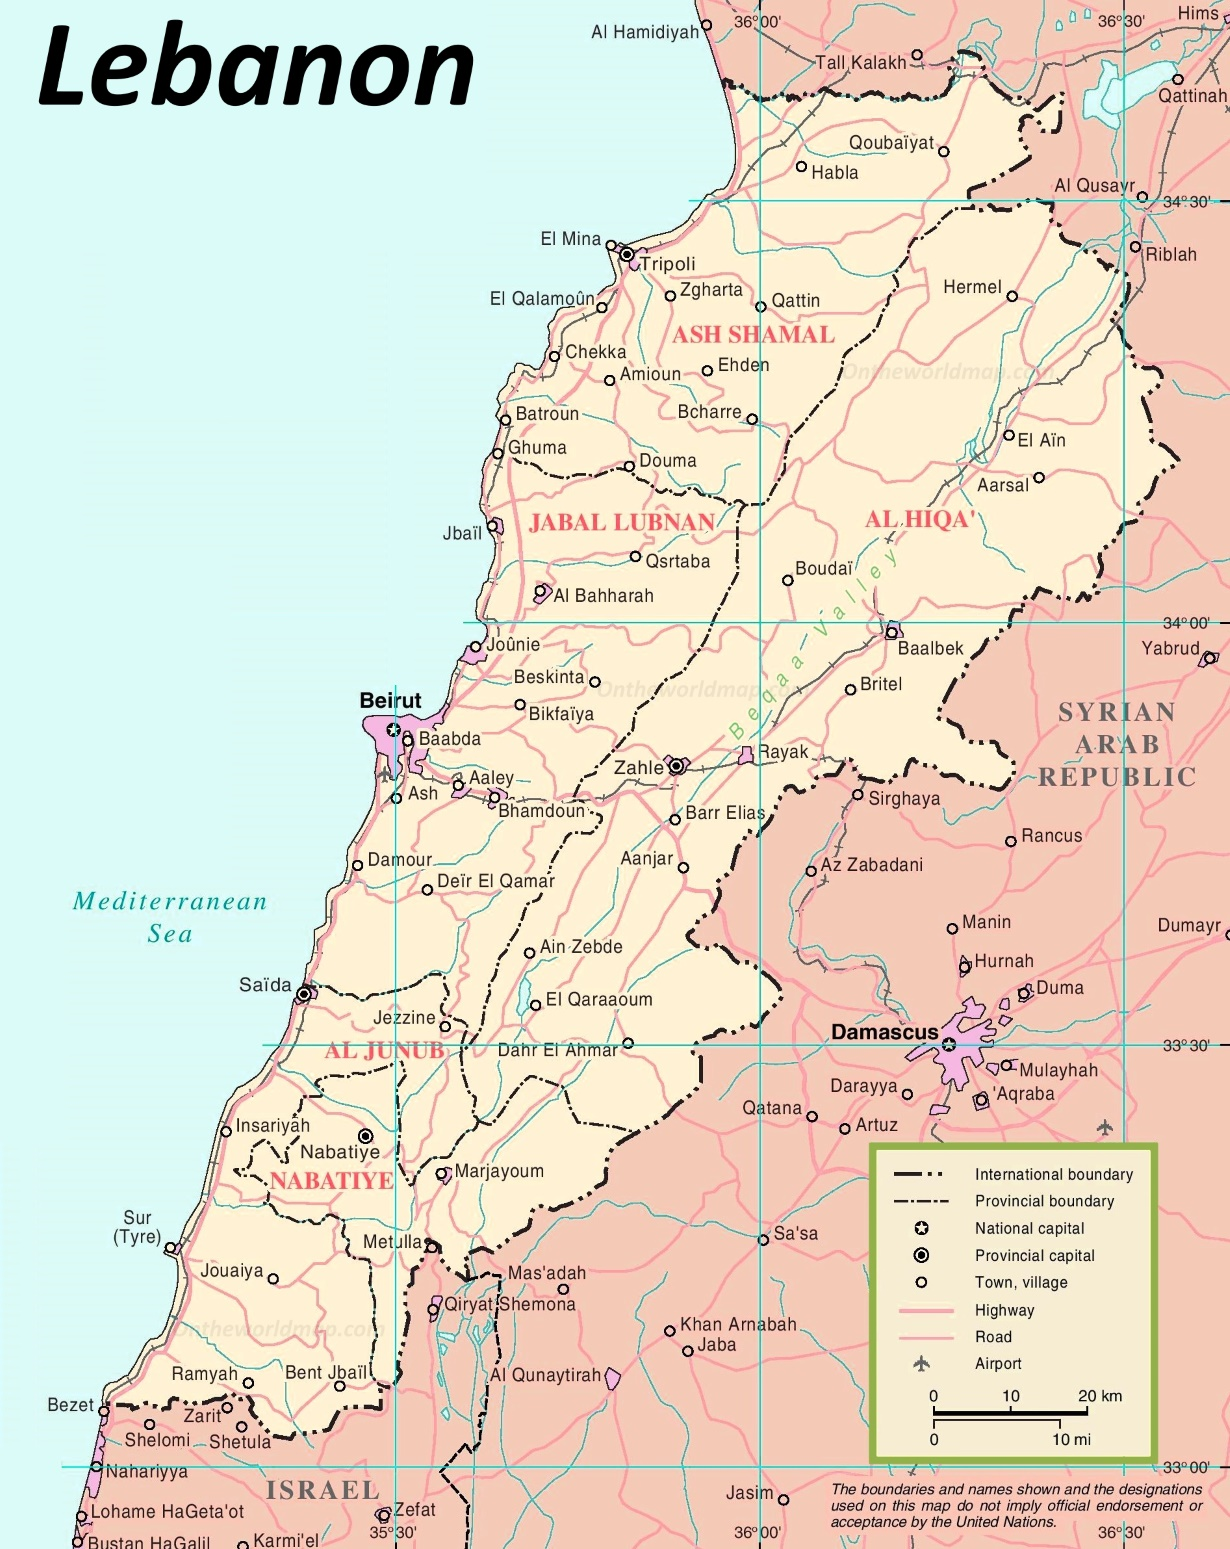 Lebanon Political Map - Lebanon map